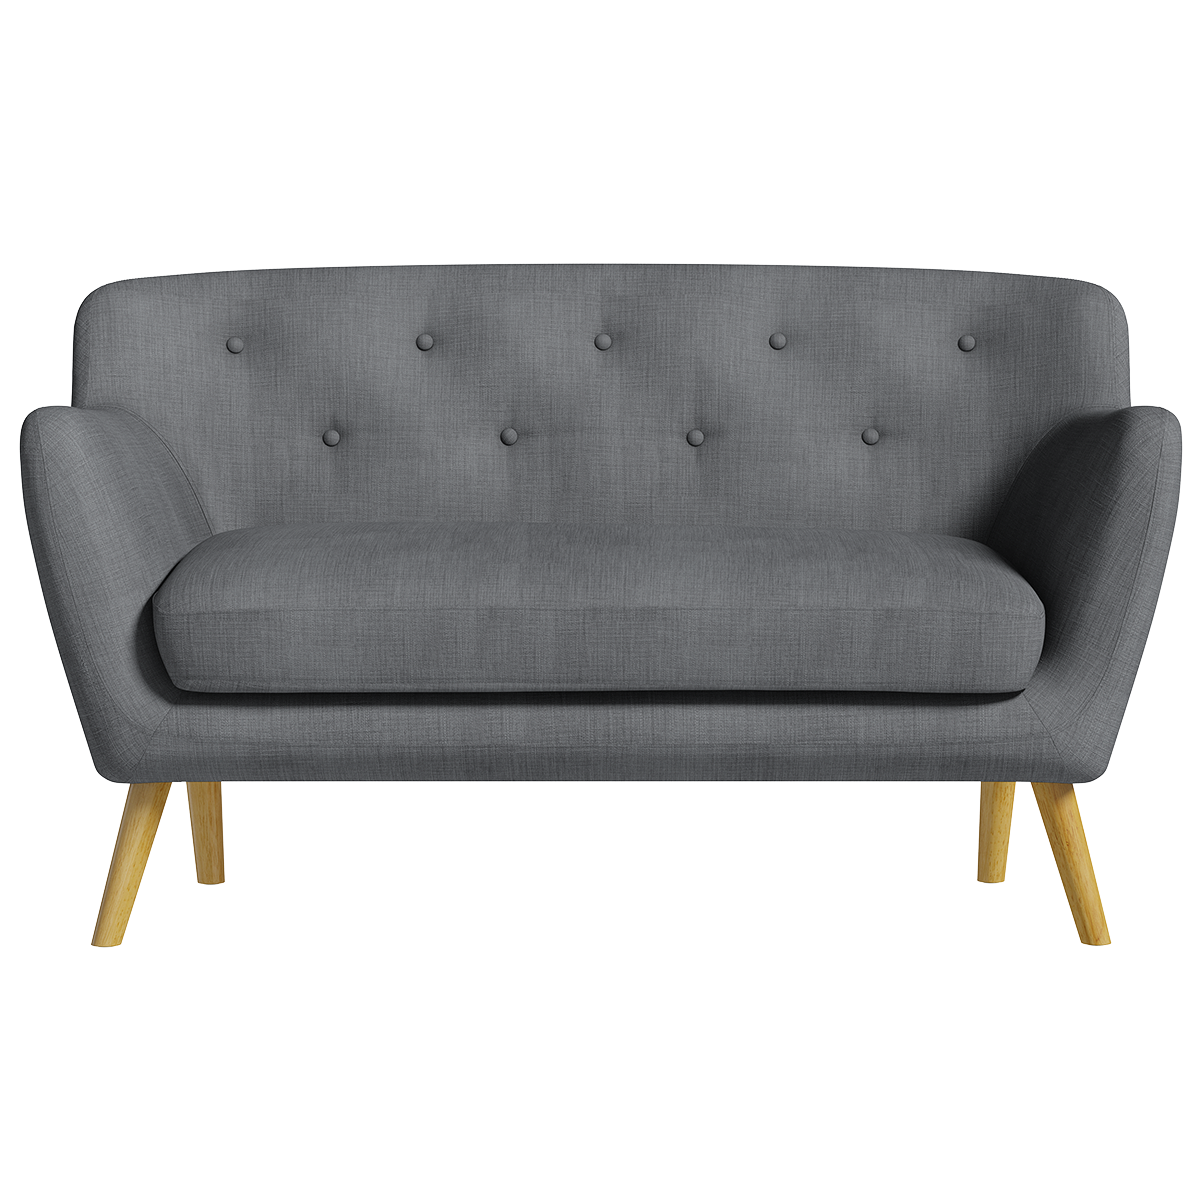 Holborn Medium Sofa - Charcoal with Light-Coloured Legs